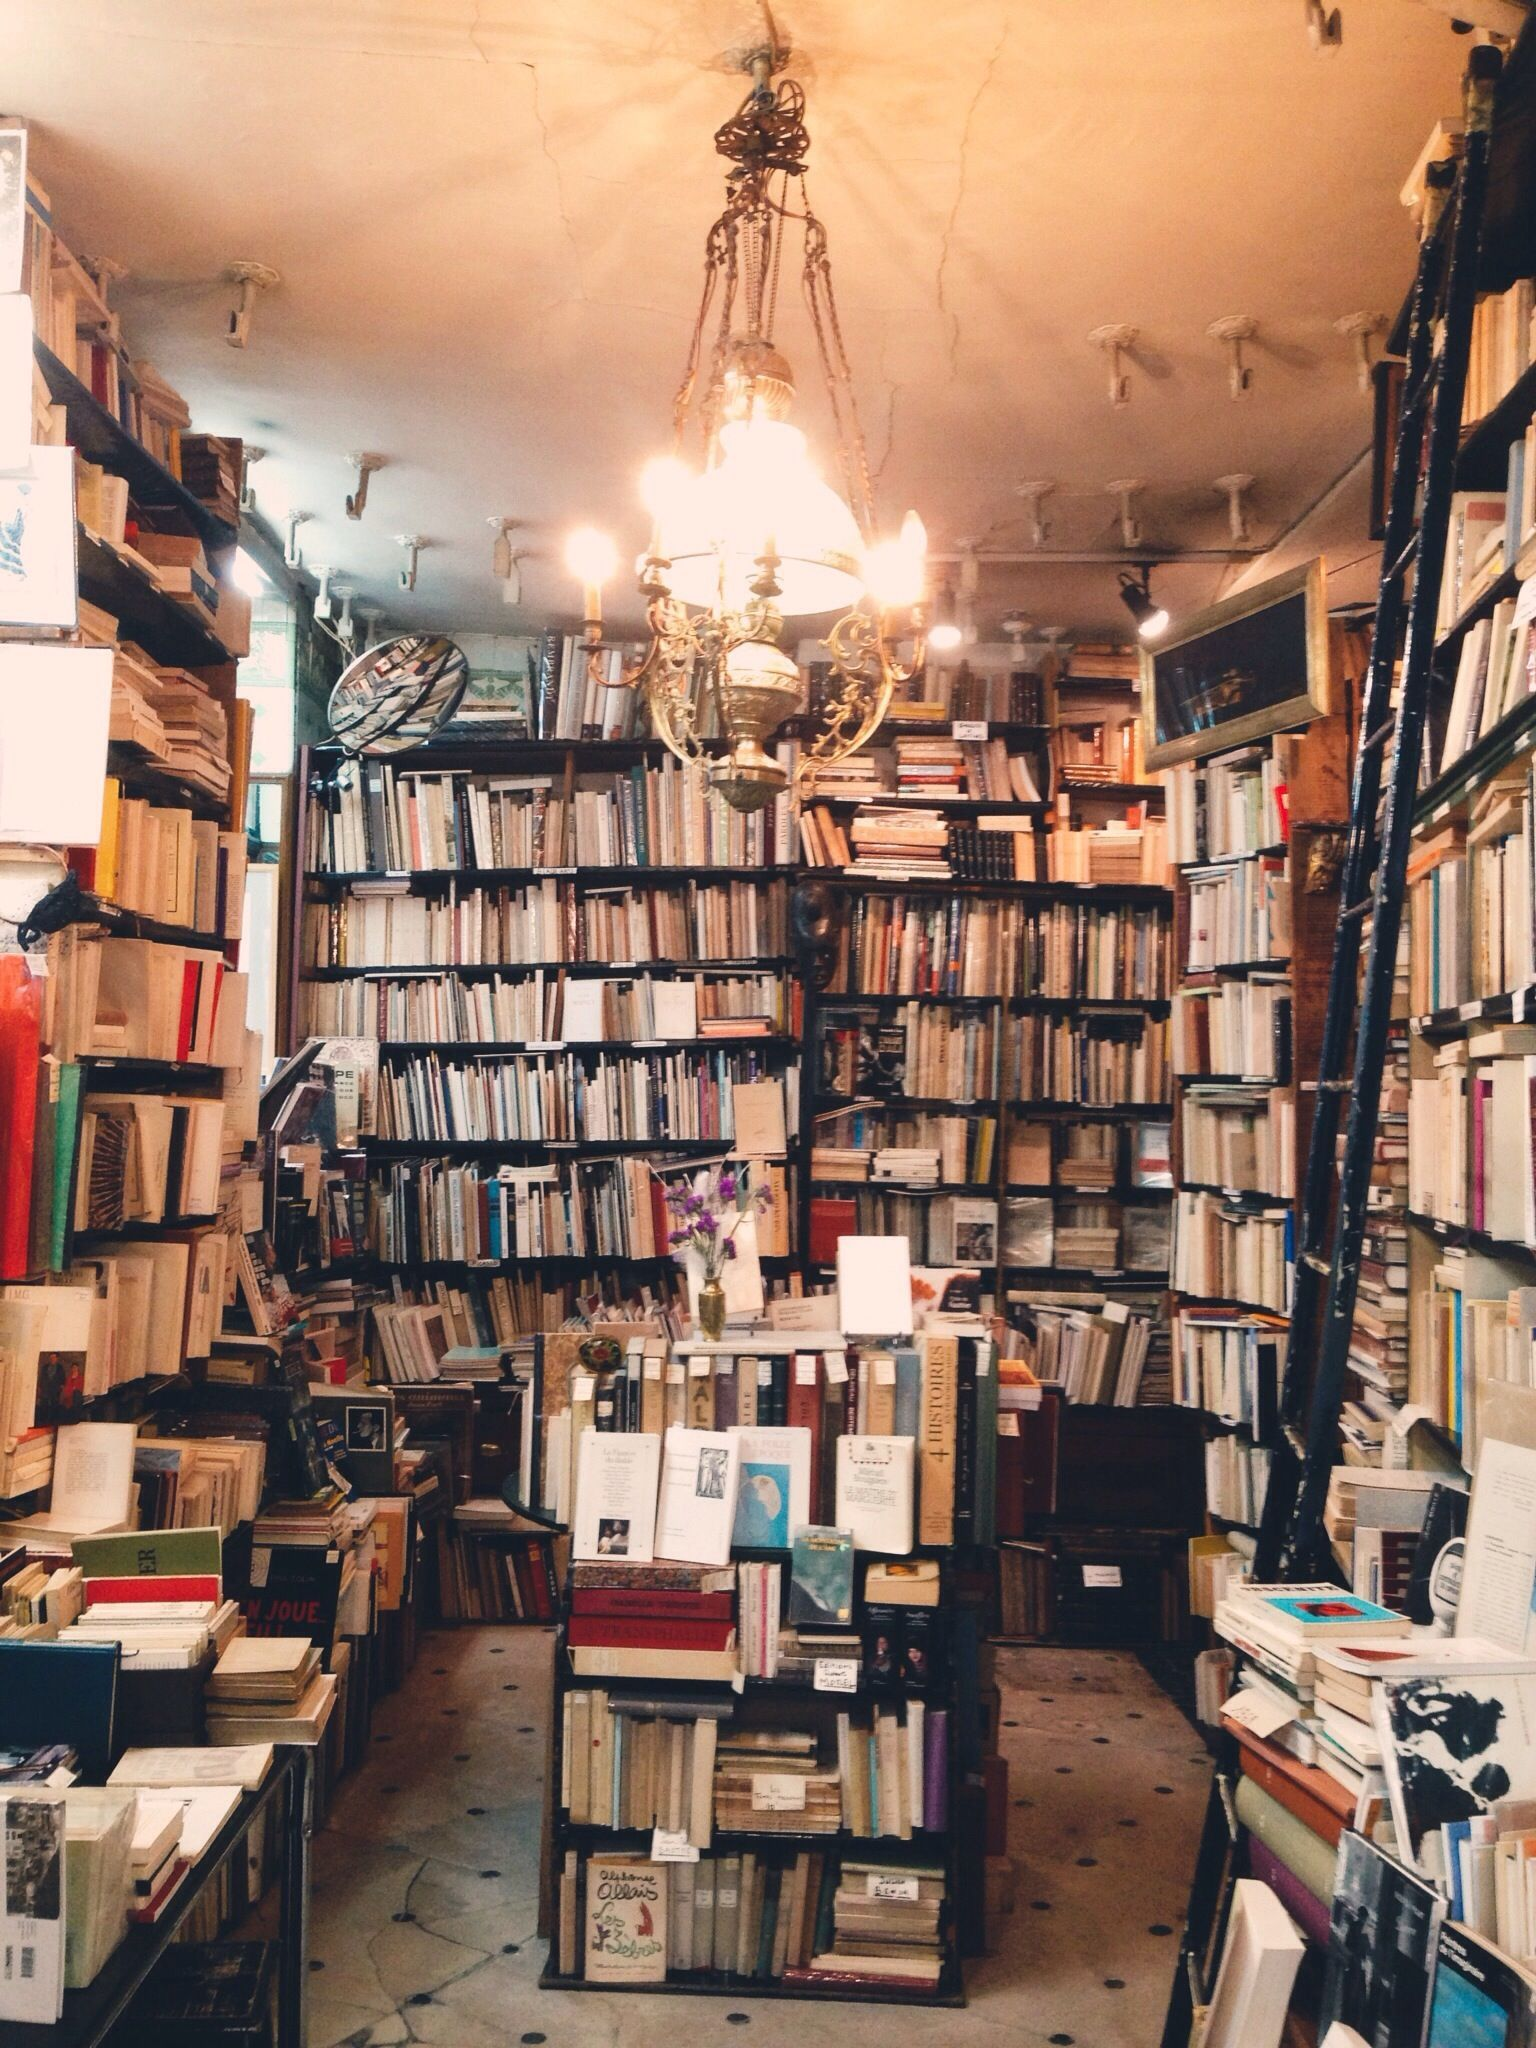 The Old Butcher's Bookshop, Paris | Messy nessy chic, Library books,  Holiday books